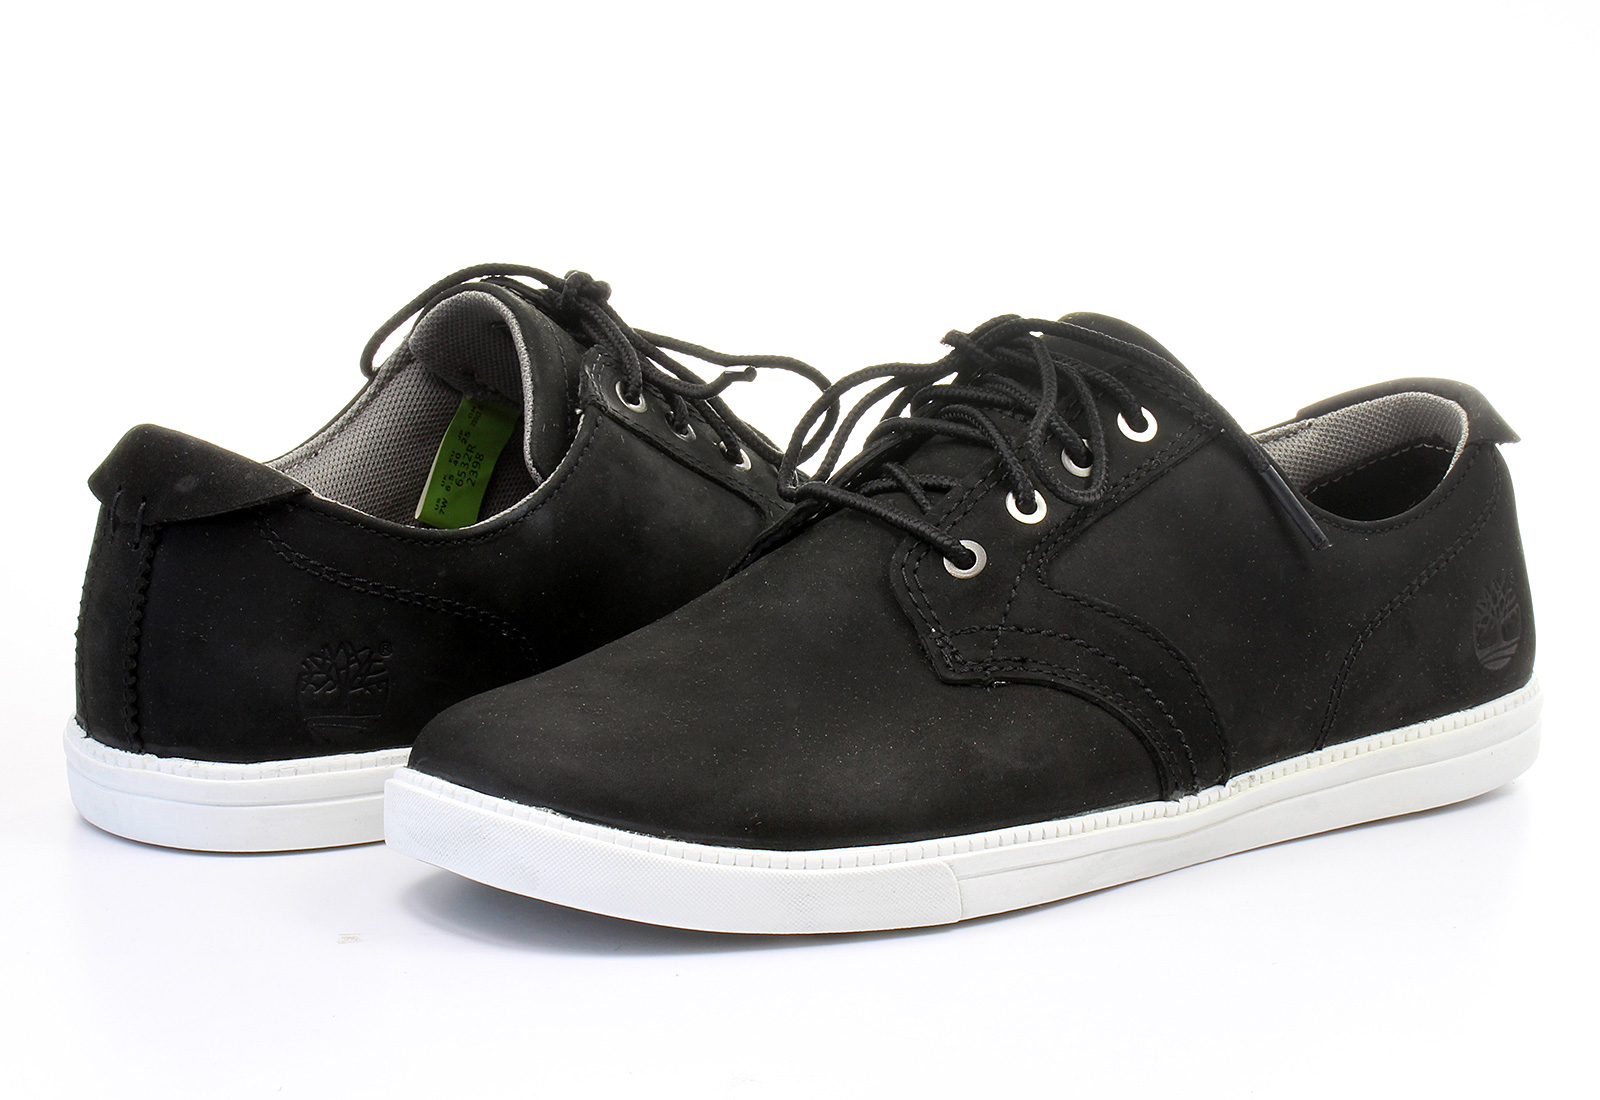 LP Shoes. likes. LP Shoes. Men shoes crafted by hand focusing on comfort and design.